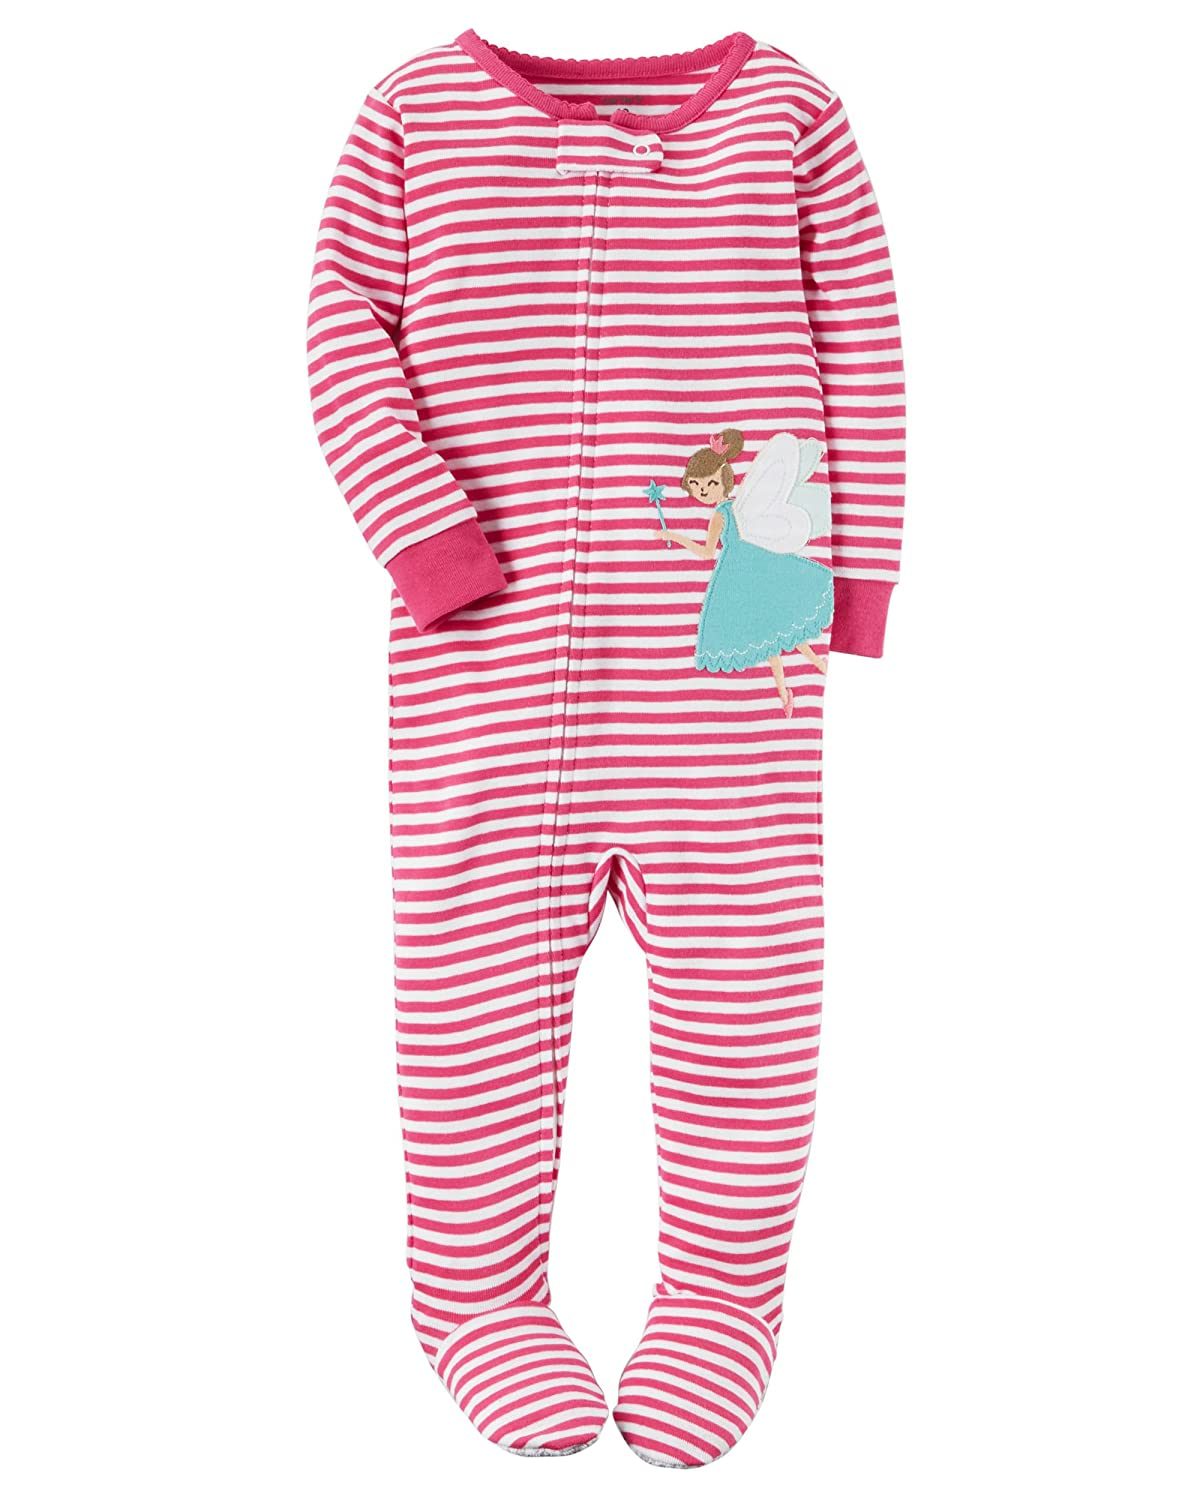 Amazon.com  Carters Toddler Girls Lightweight Snowman Sleeper Footie Pajama  Sleep   Play  Clothing 487d2091f